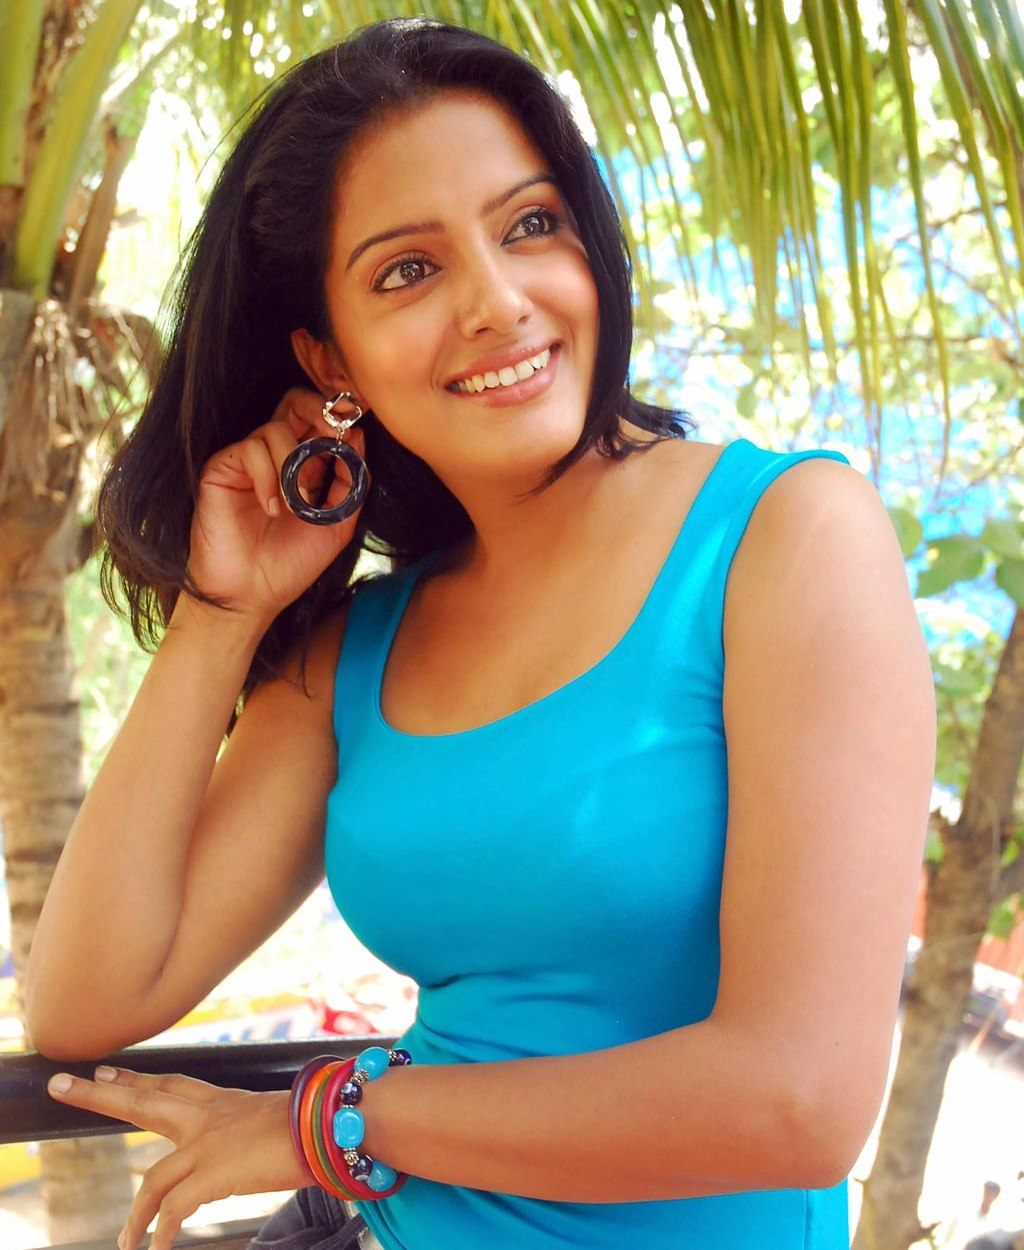 actress singh tight jeans vishaka visakha cute sleeveless bollywood tshirt wallpapers sing tollywood cleavage vishakha stills steamy heroines advertisements